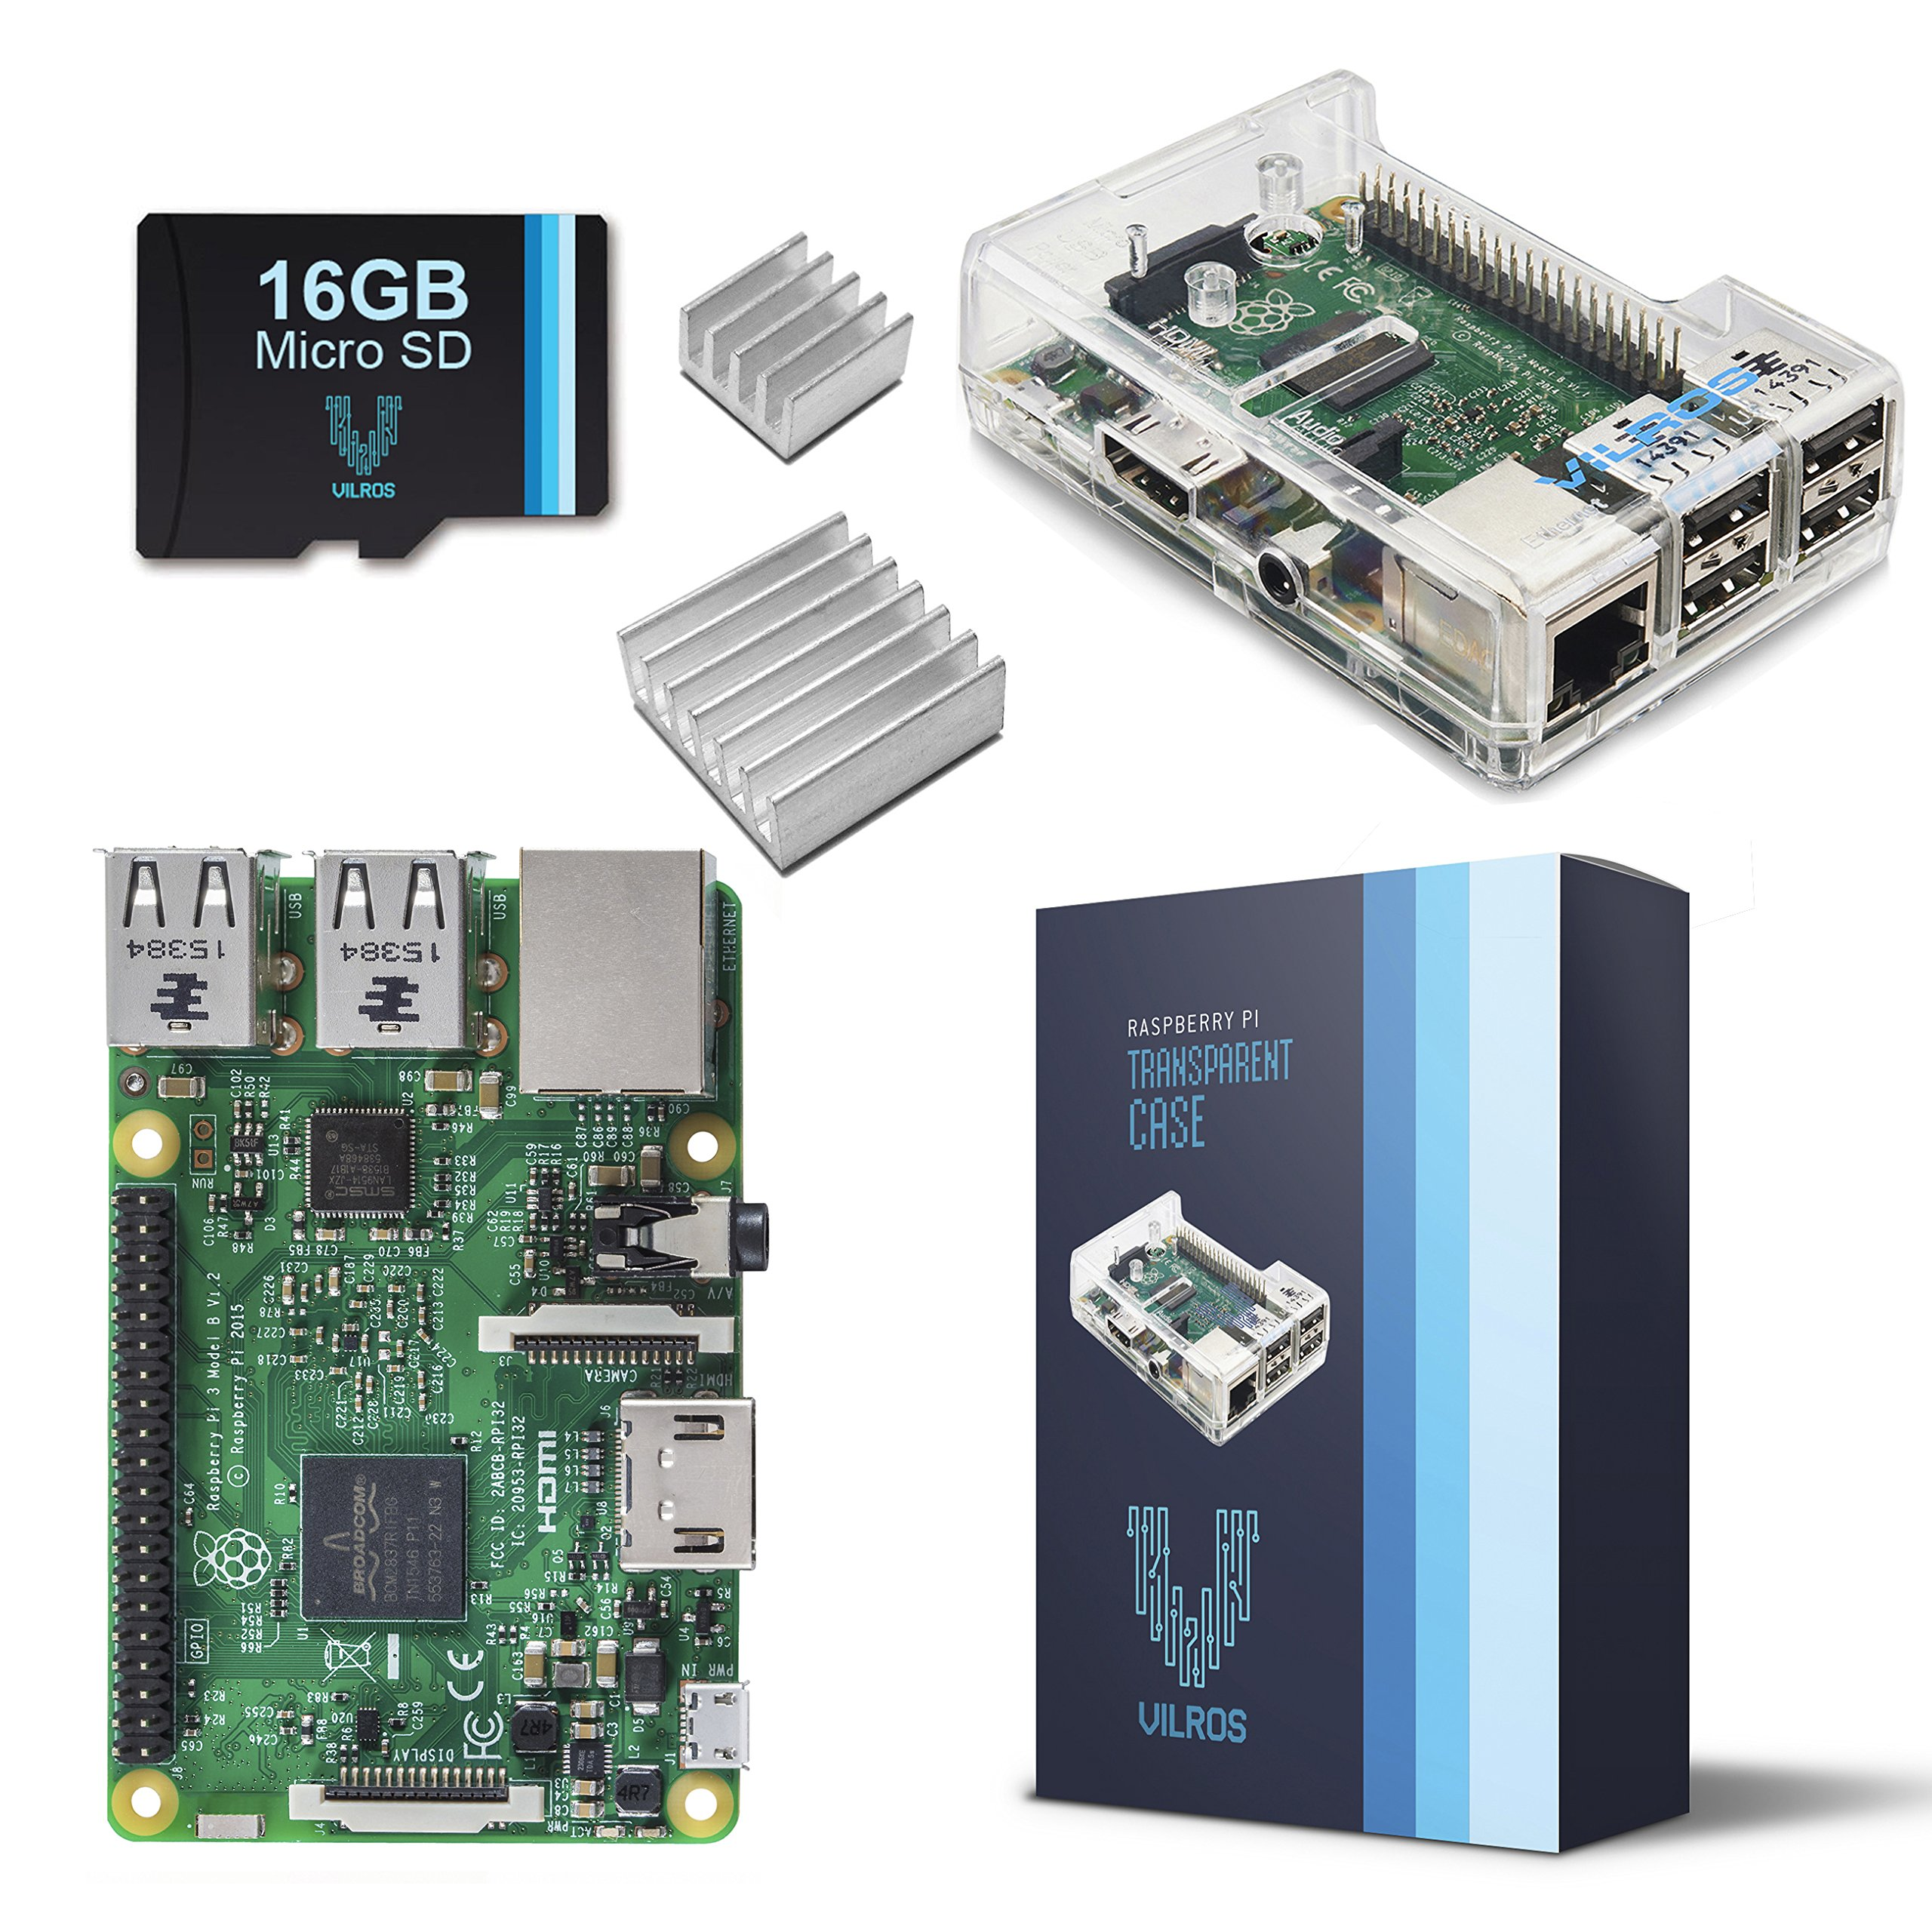 Raspberry Pi 3 Barebones Kit - Includes Raspberry PI 3 - Sandisk 16GB Micro SD Card - Clear Case - Heatsink by Vilros